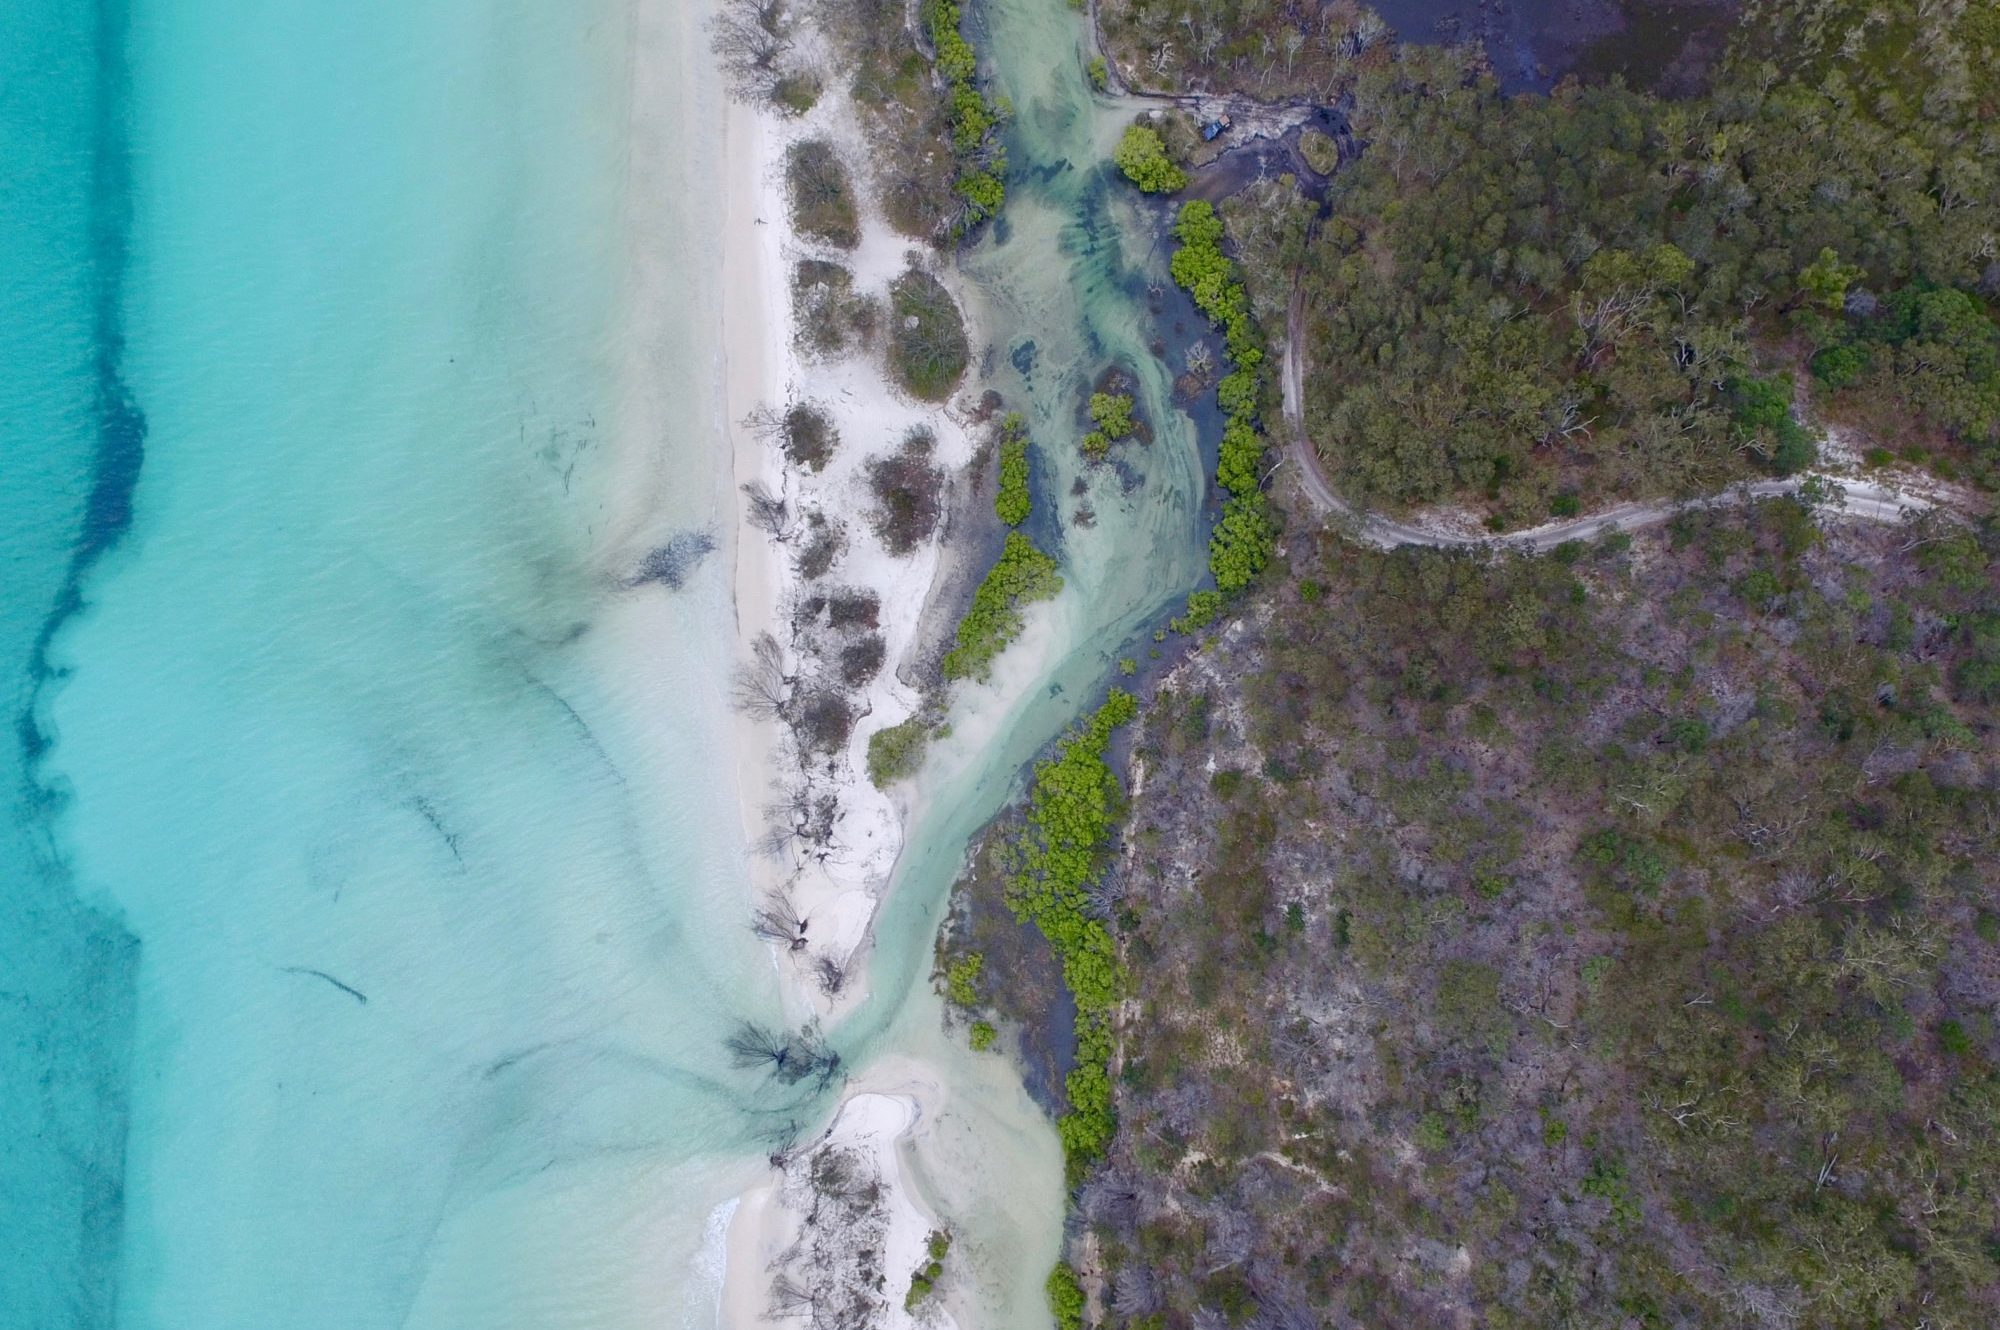 Aerial Photography – Awinya Creek, Fraser Island